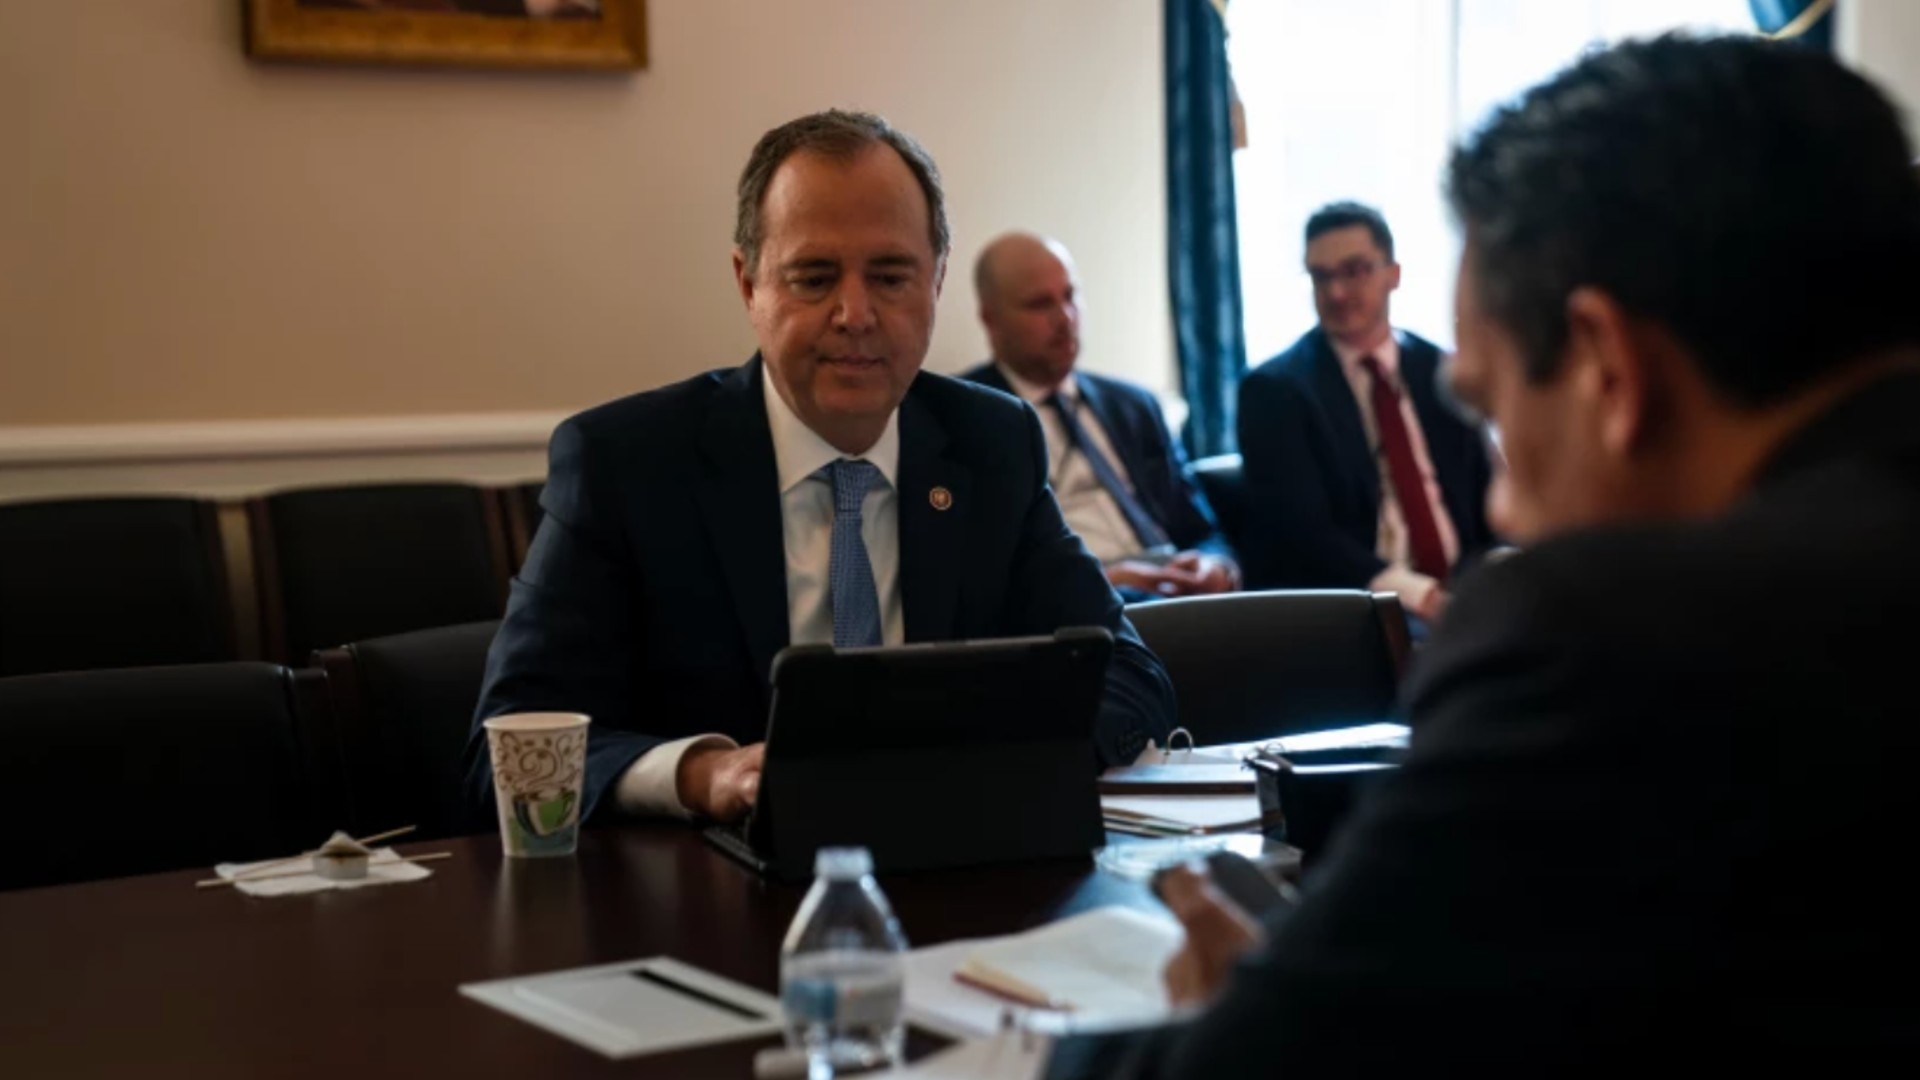 Rep. Adam B. Schiff (D-Burbank) and other House members.(Kent Nishimura / Los Angeles Times)